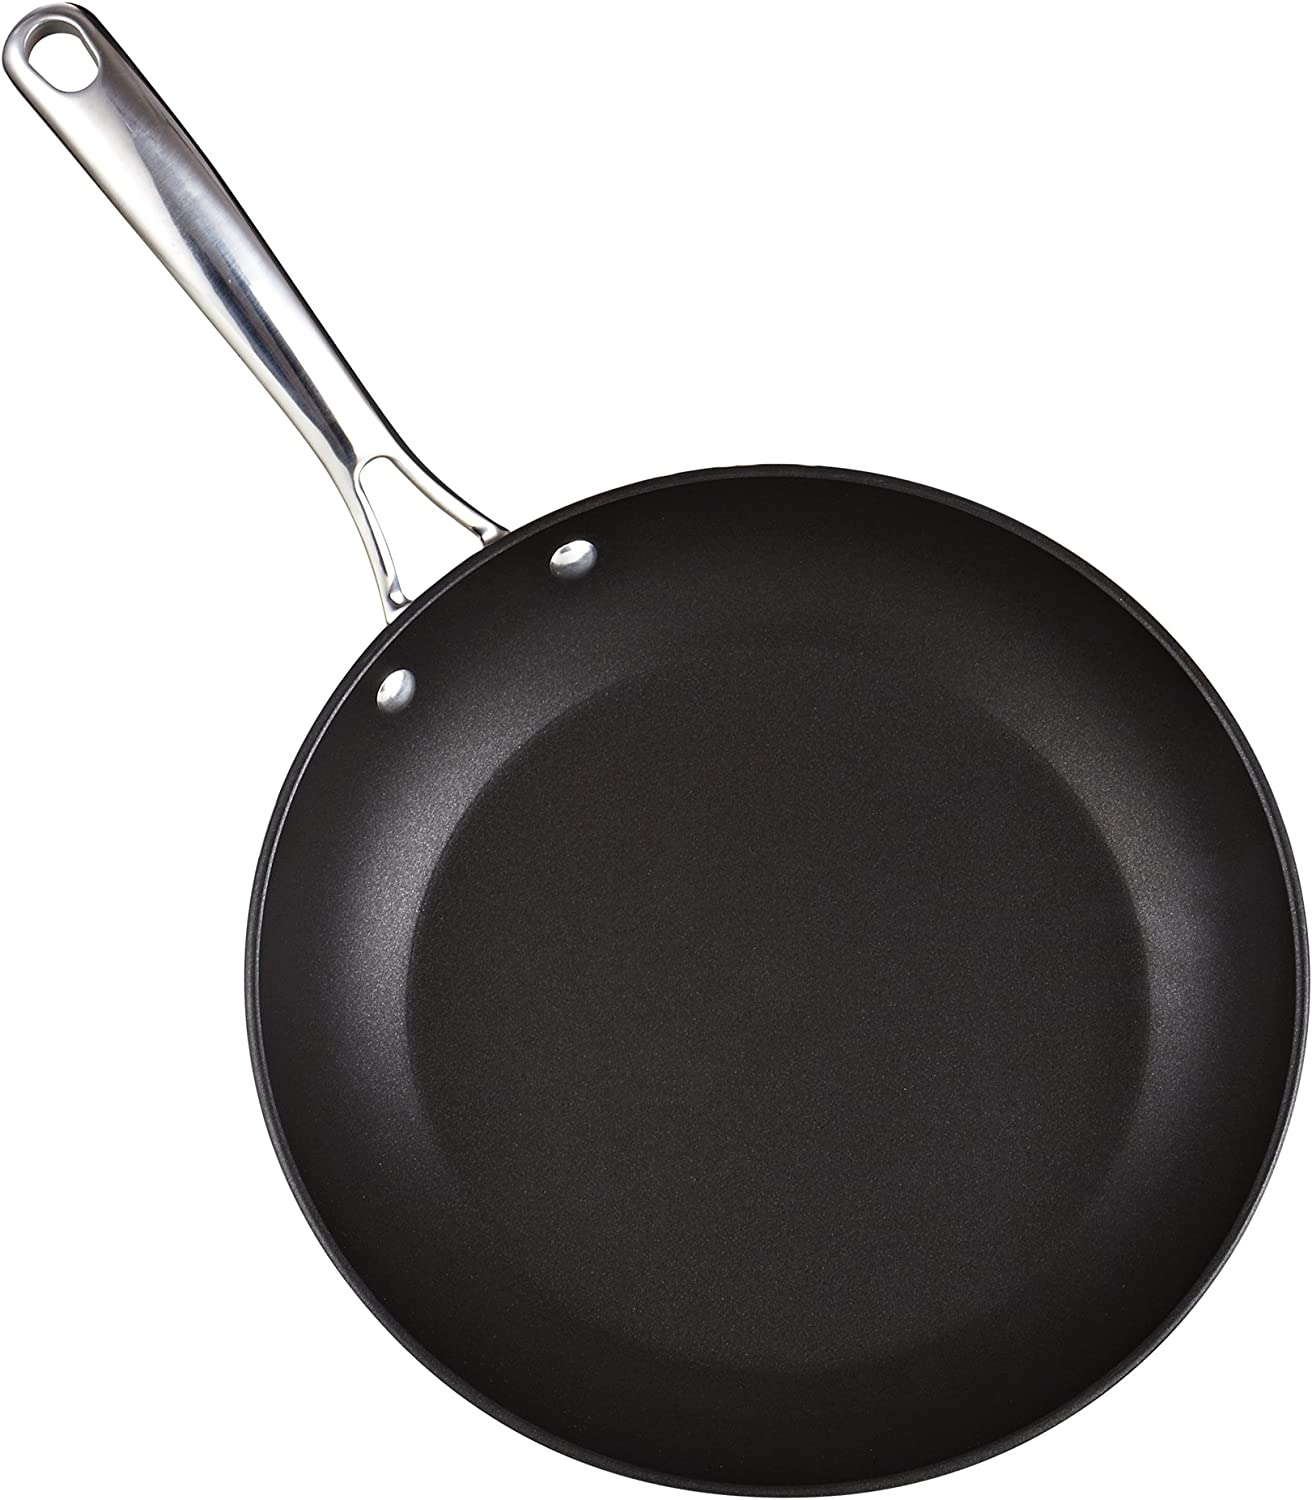 Cooks Standard 02537 11-Inch, Black Nonstick Hard Anodized Fry Saute Omelet Pan